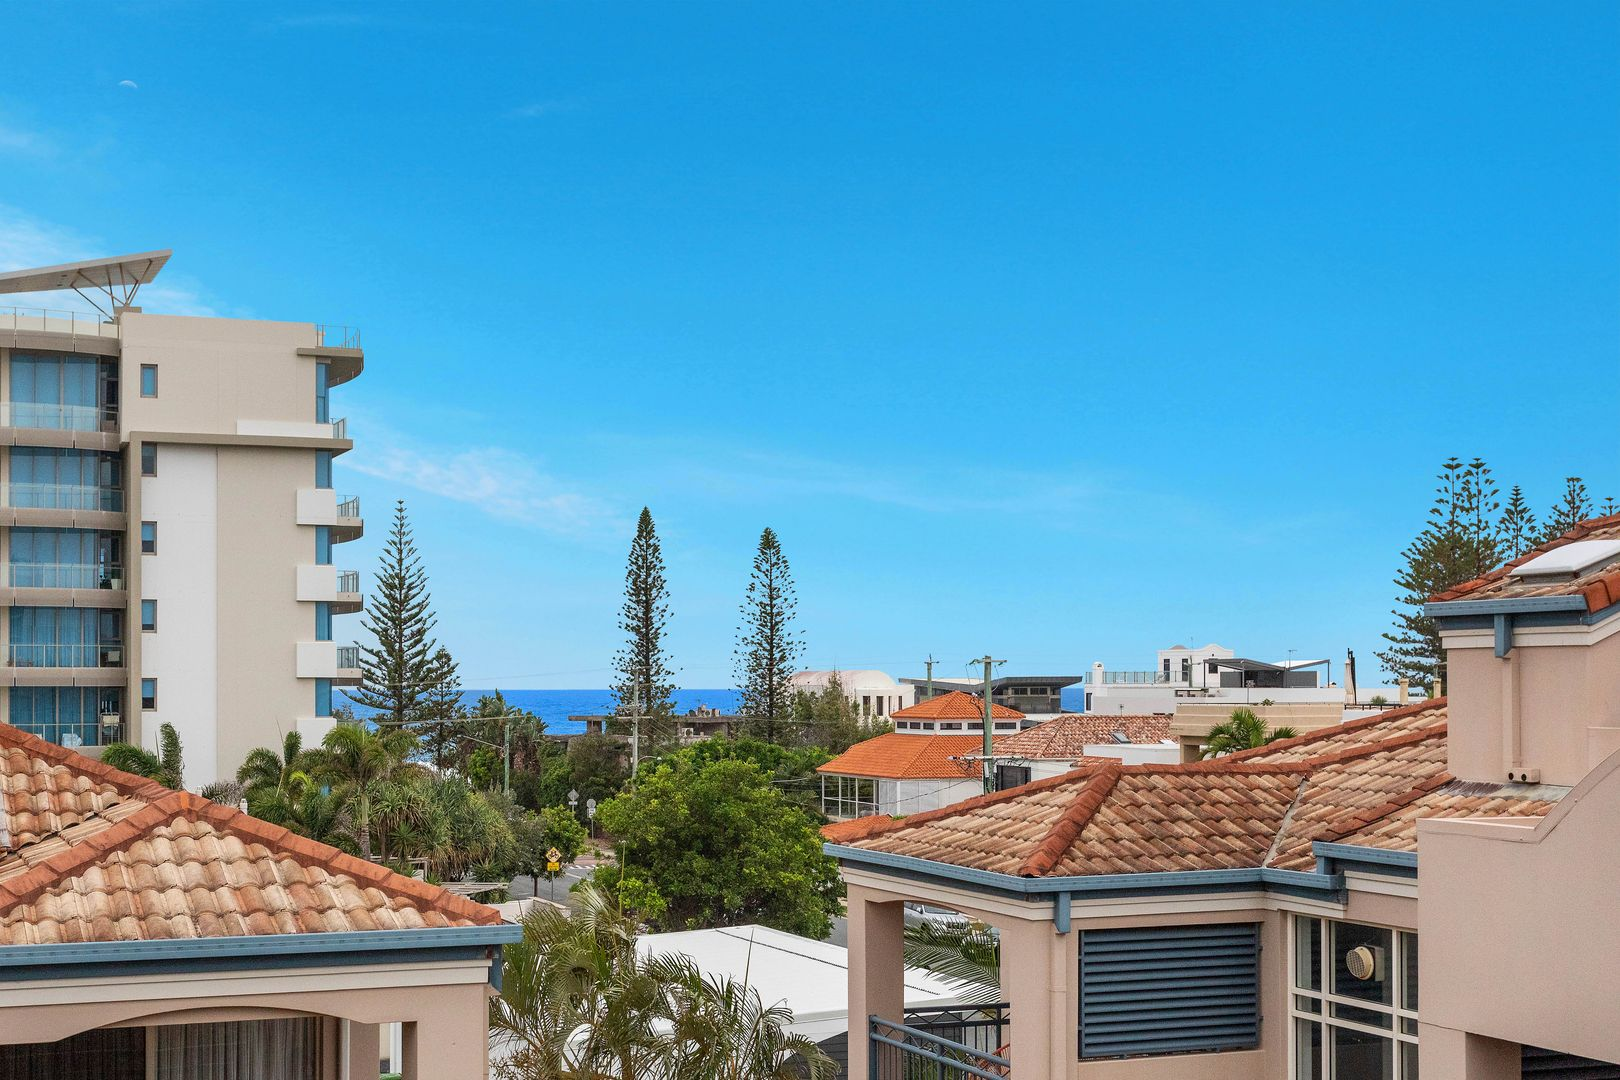 23/21-25 Peerless Avenue, Mermaid Beach QLD 4218, Image 0